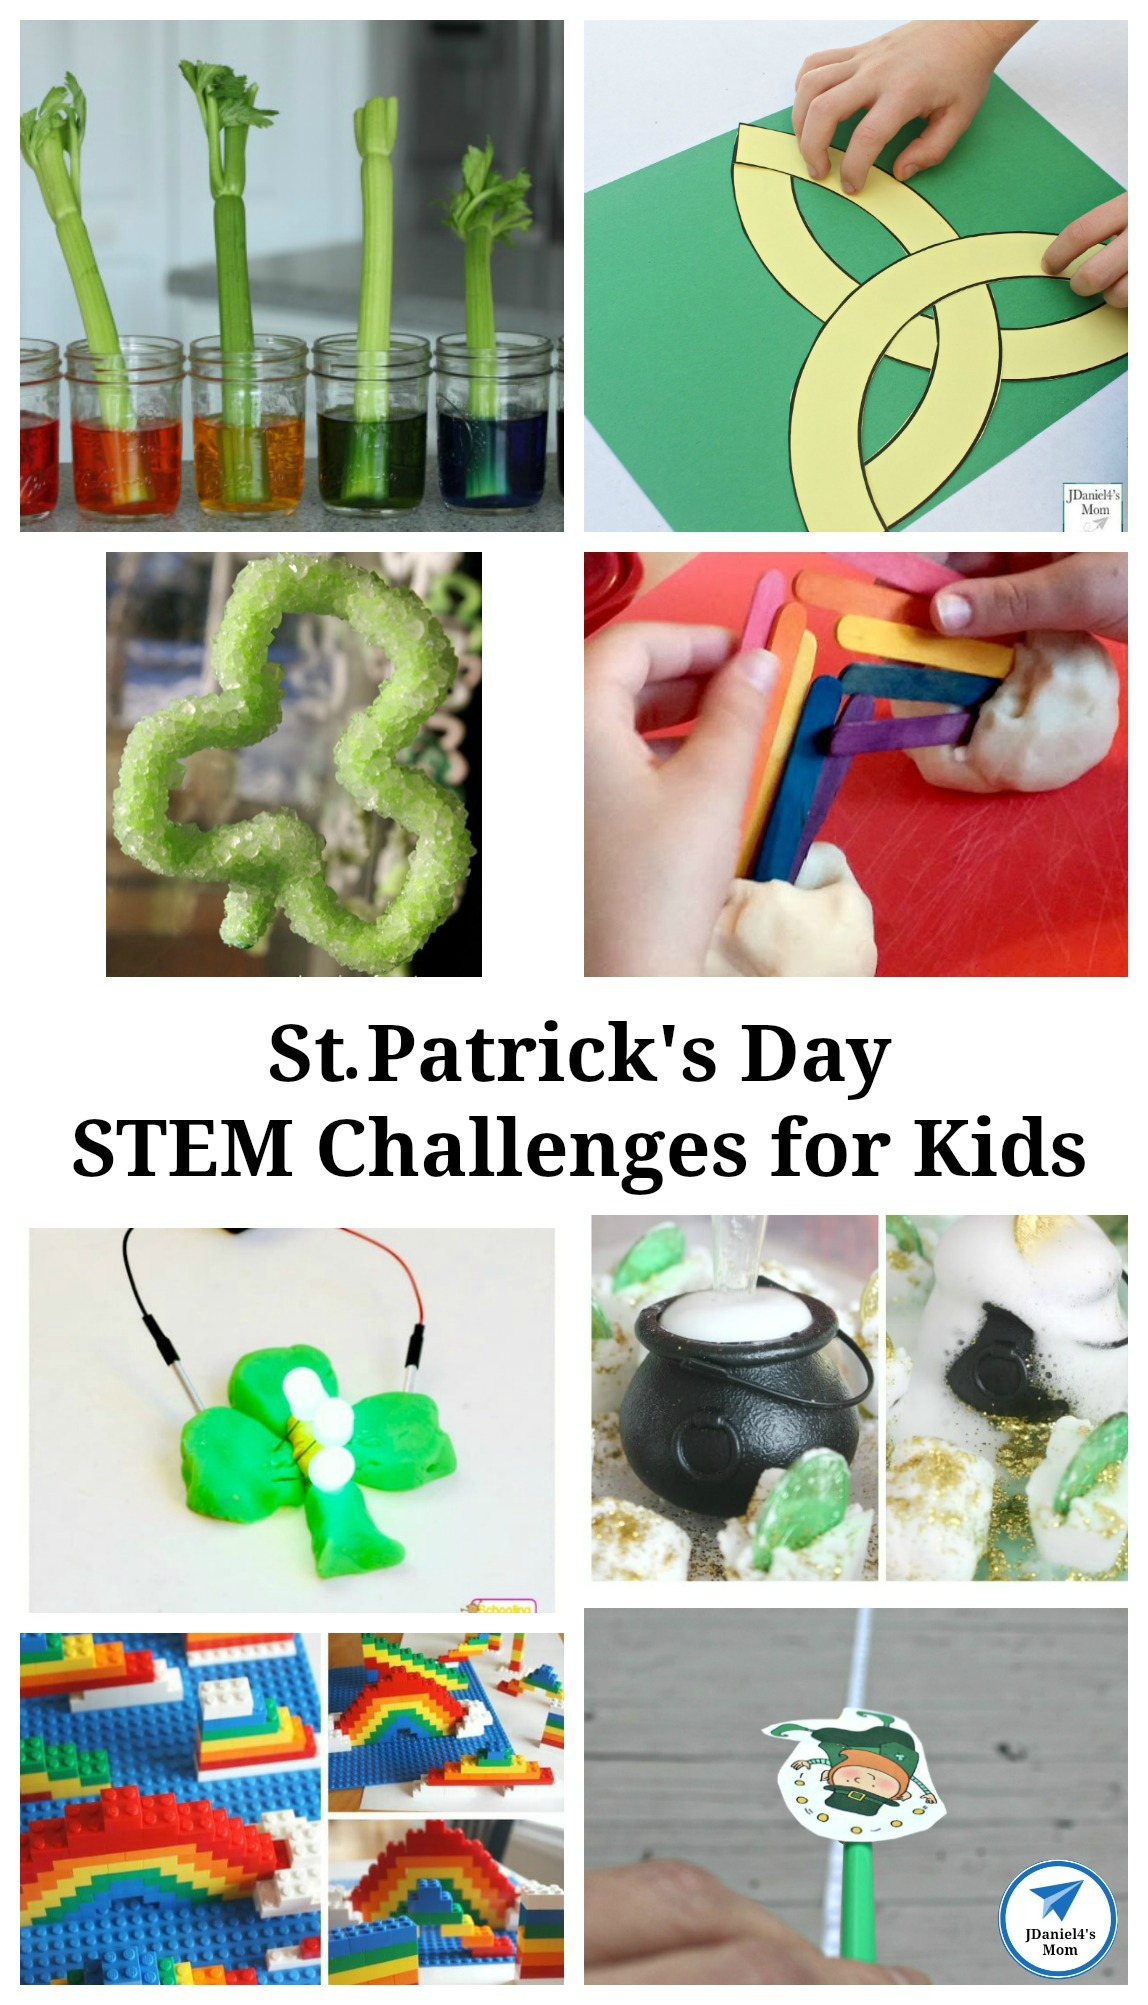 This collection St Patrick's Day STEM Challenges for Kids features rainbows, leprechauns, shamrocks and bits of Irish culture. Your students at school and children at home will have fun exploring them. #stpatricksday #shamrock #celticknot leprechaun #STEM #STEMchallenges #kidsactivities #jdaniel4smom